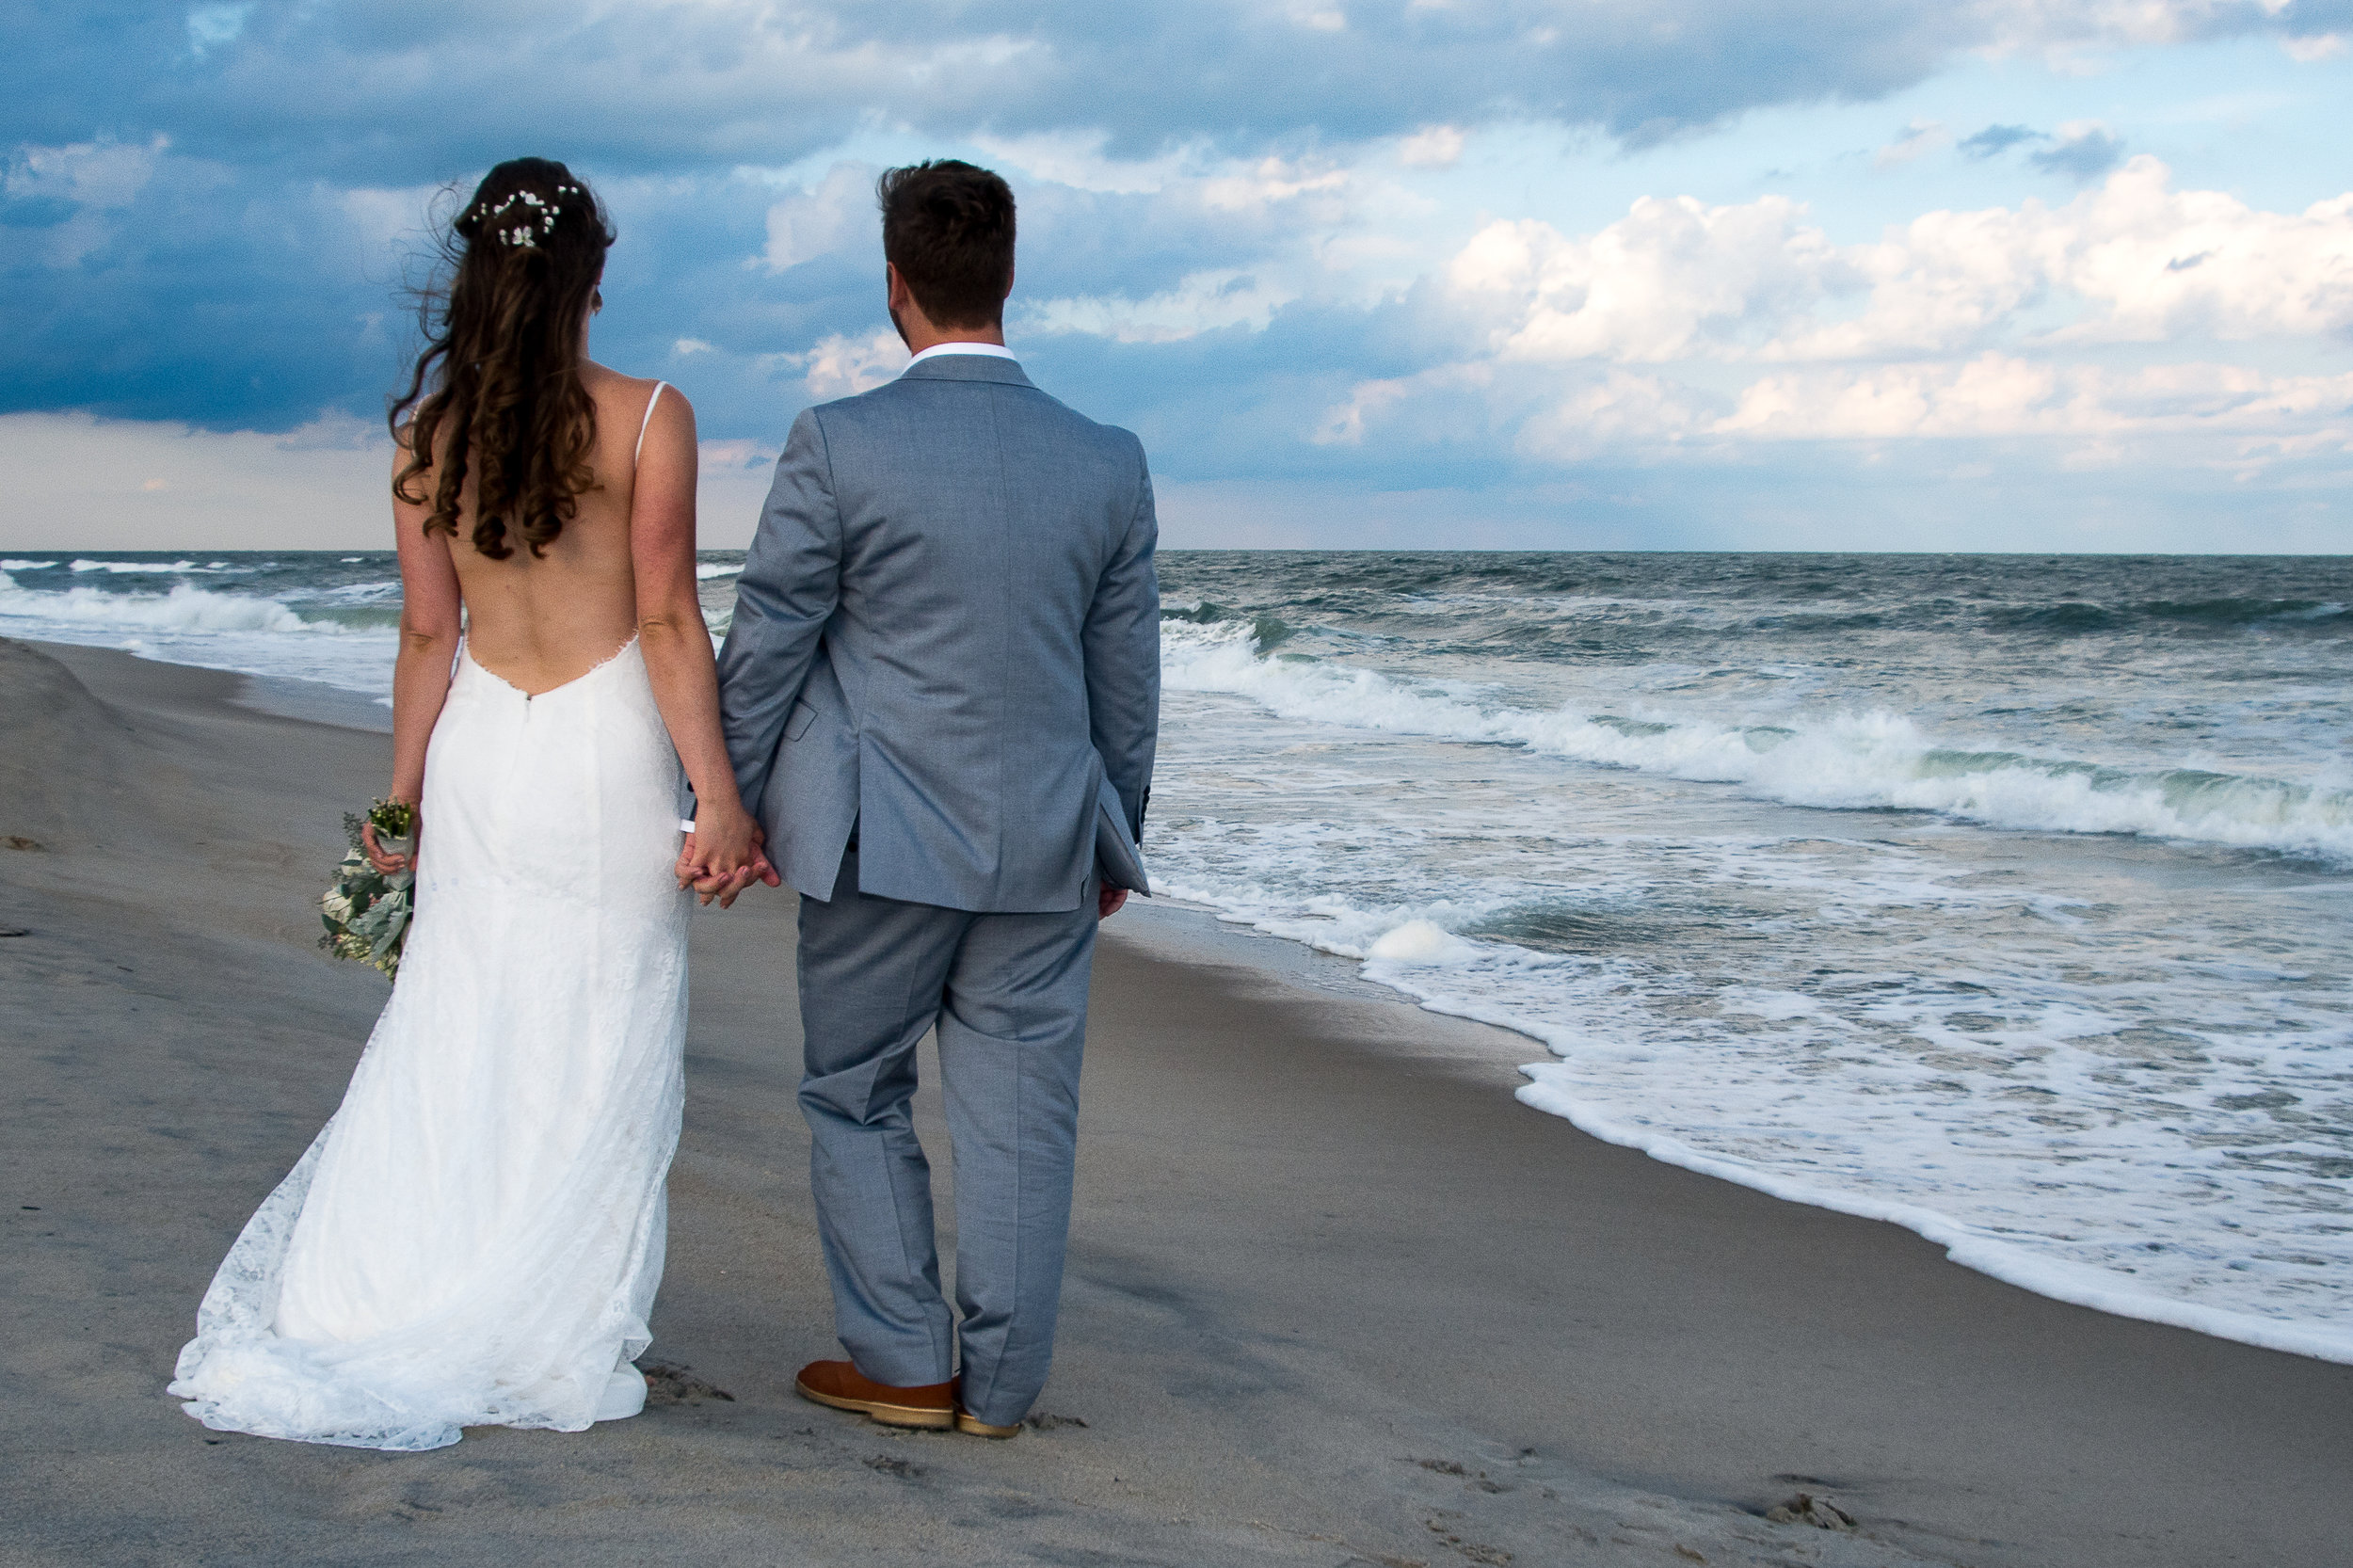 - Holding hands watching the clouds over the beach and reflecting on their new life together after the beach wedding ceremony.